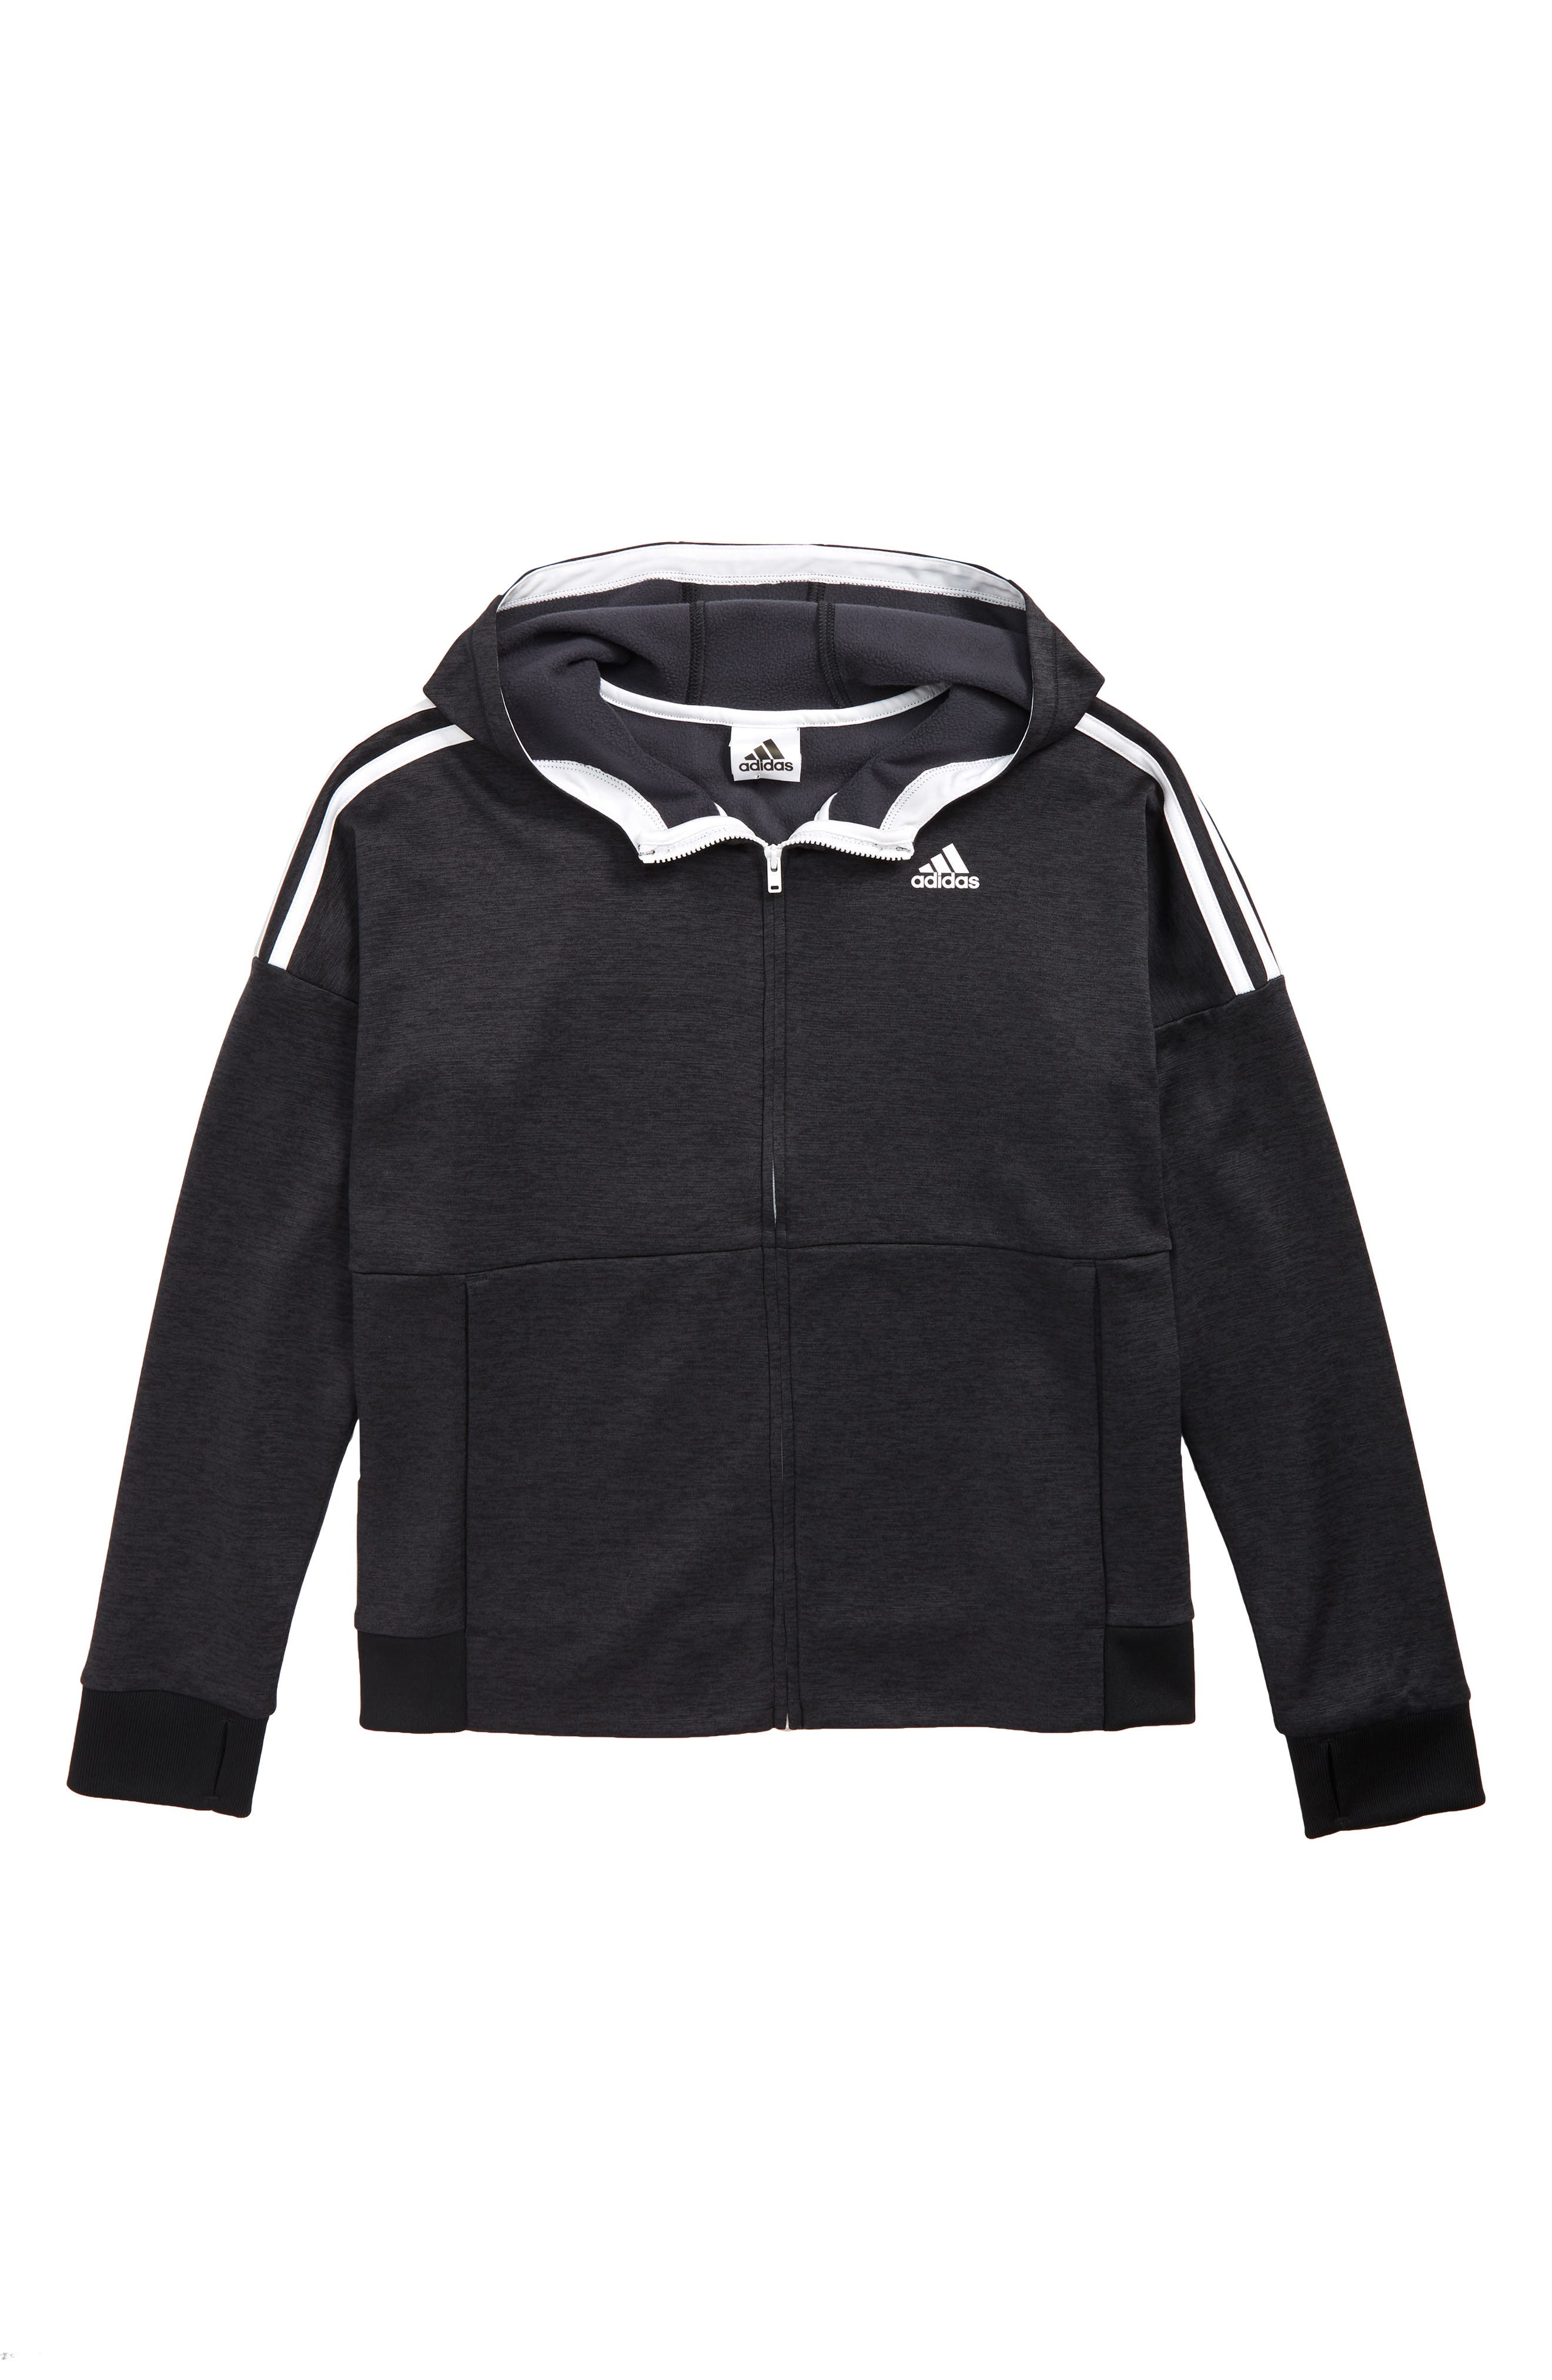 ADIDAS 3-Stripes Hooded Jacket, Main, color, BLACK 095A